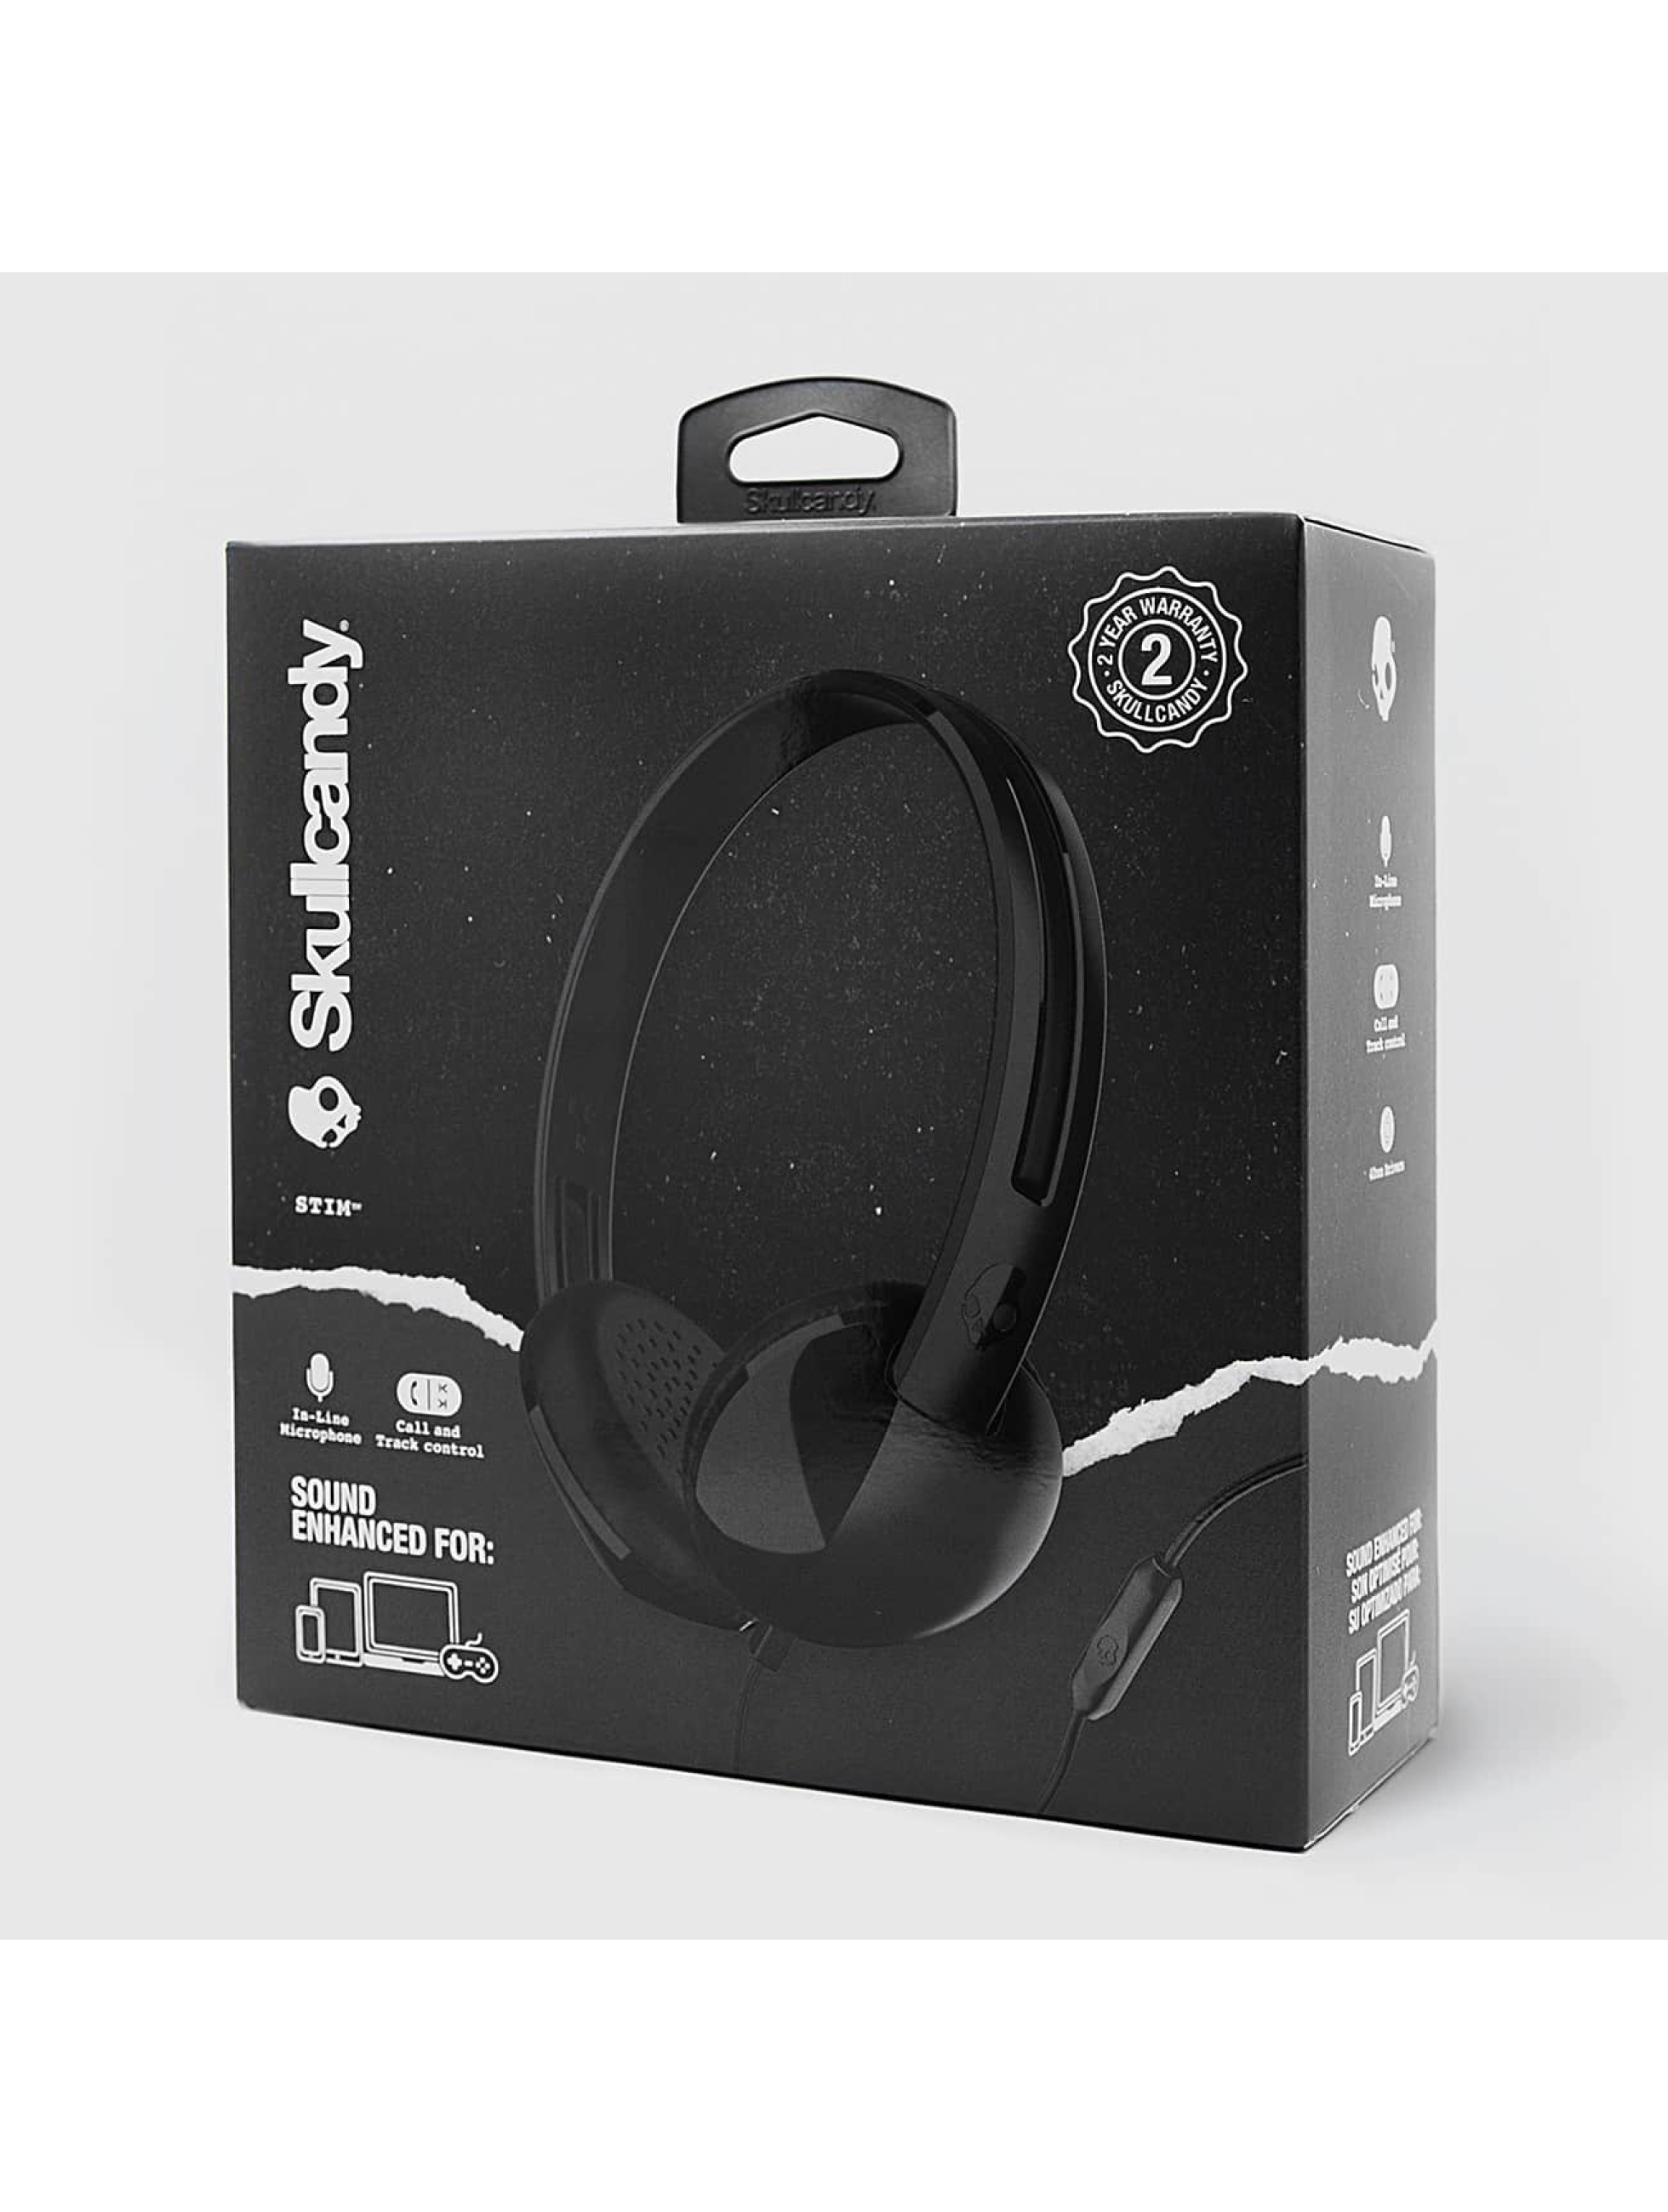 Skullcandy Cuffie musica Stim Mic 1 On Ear nero